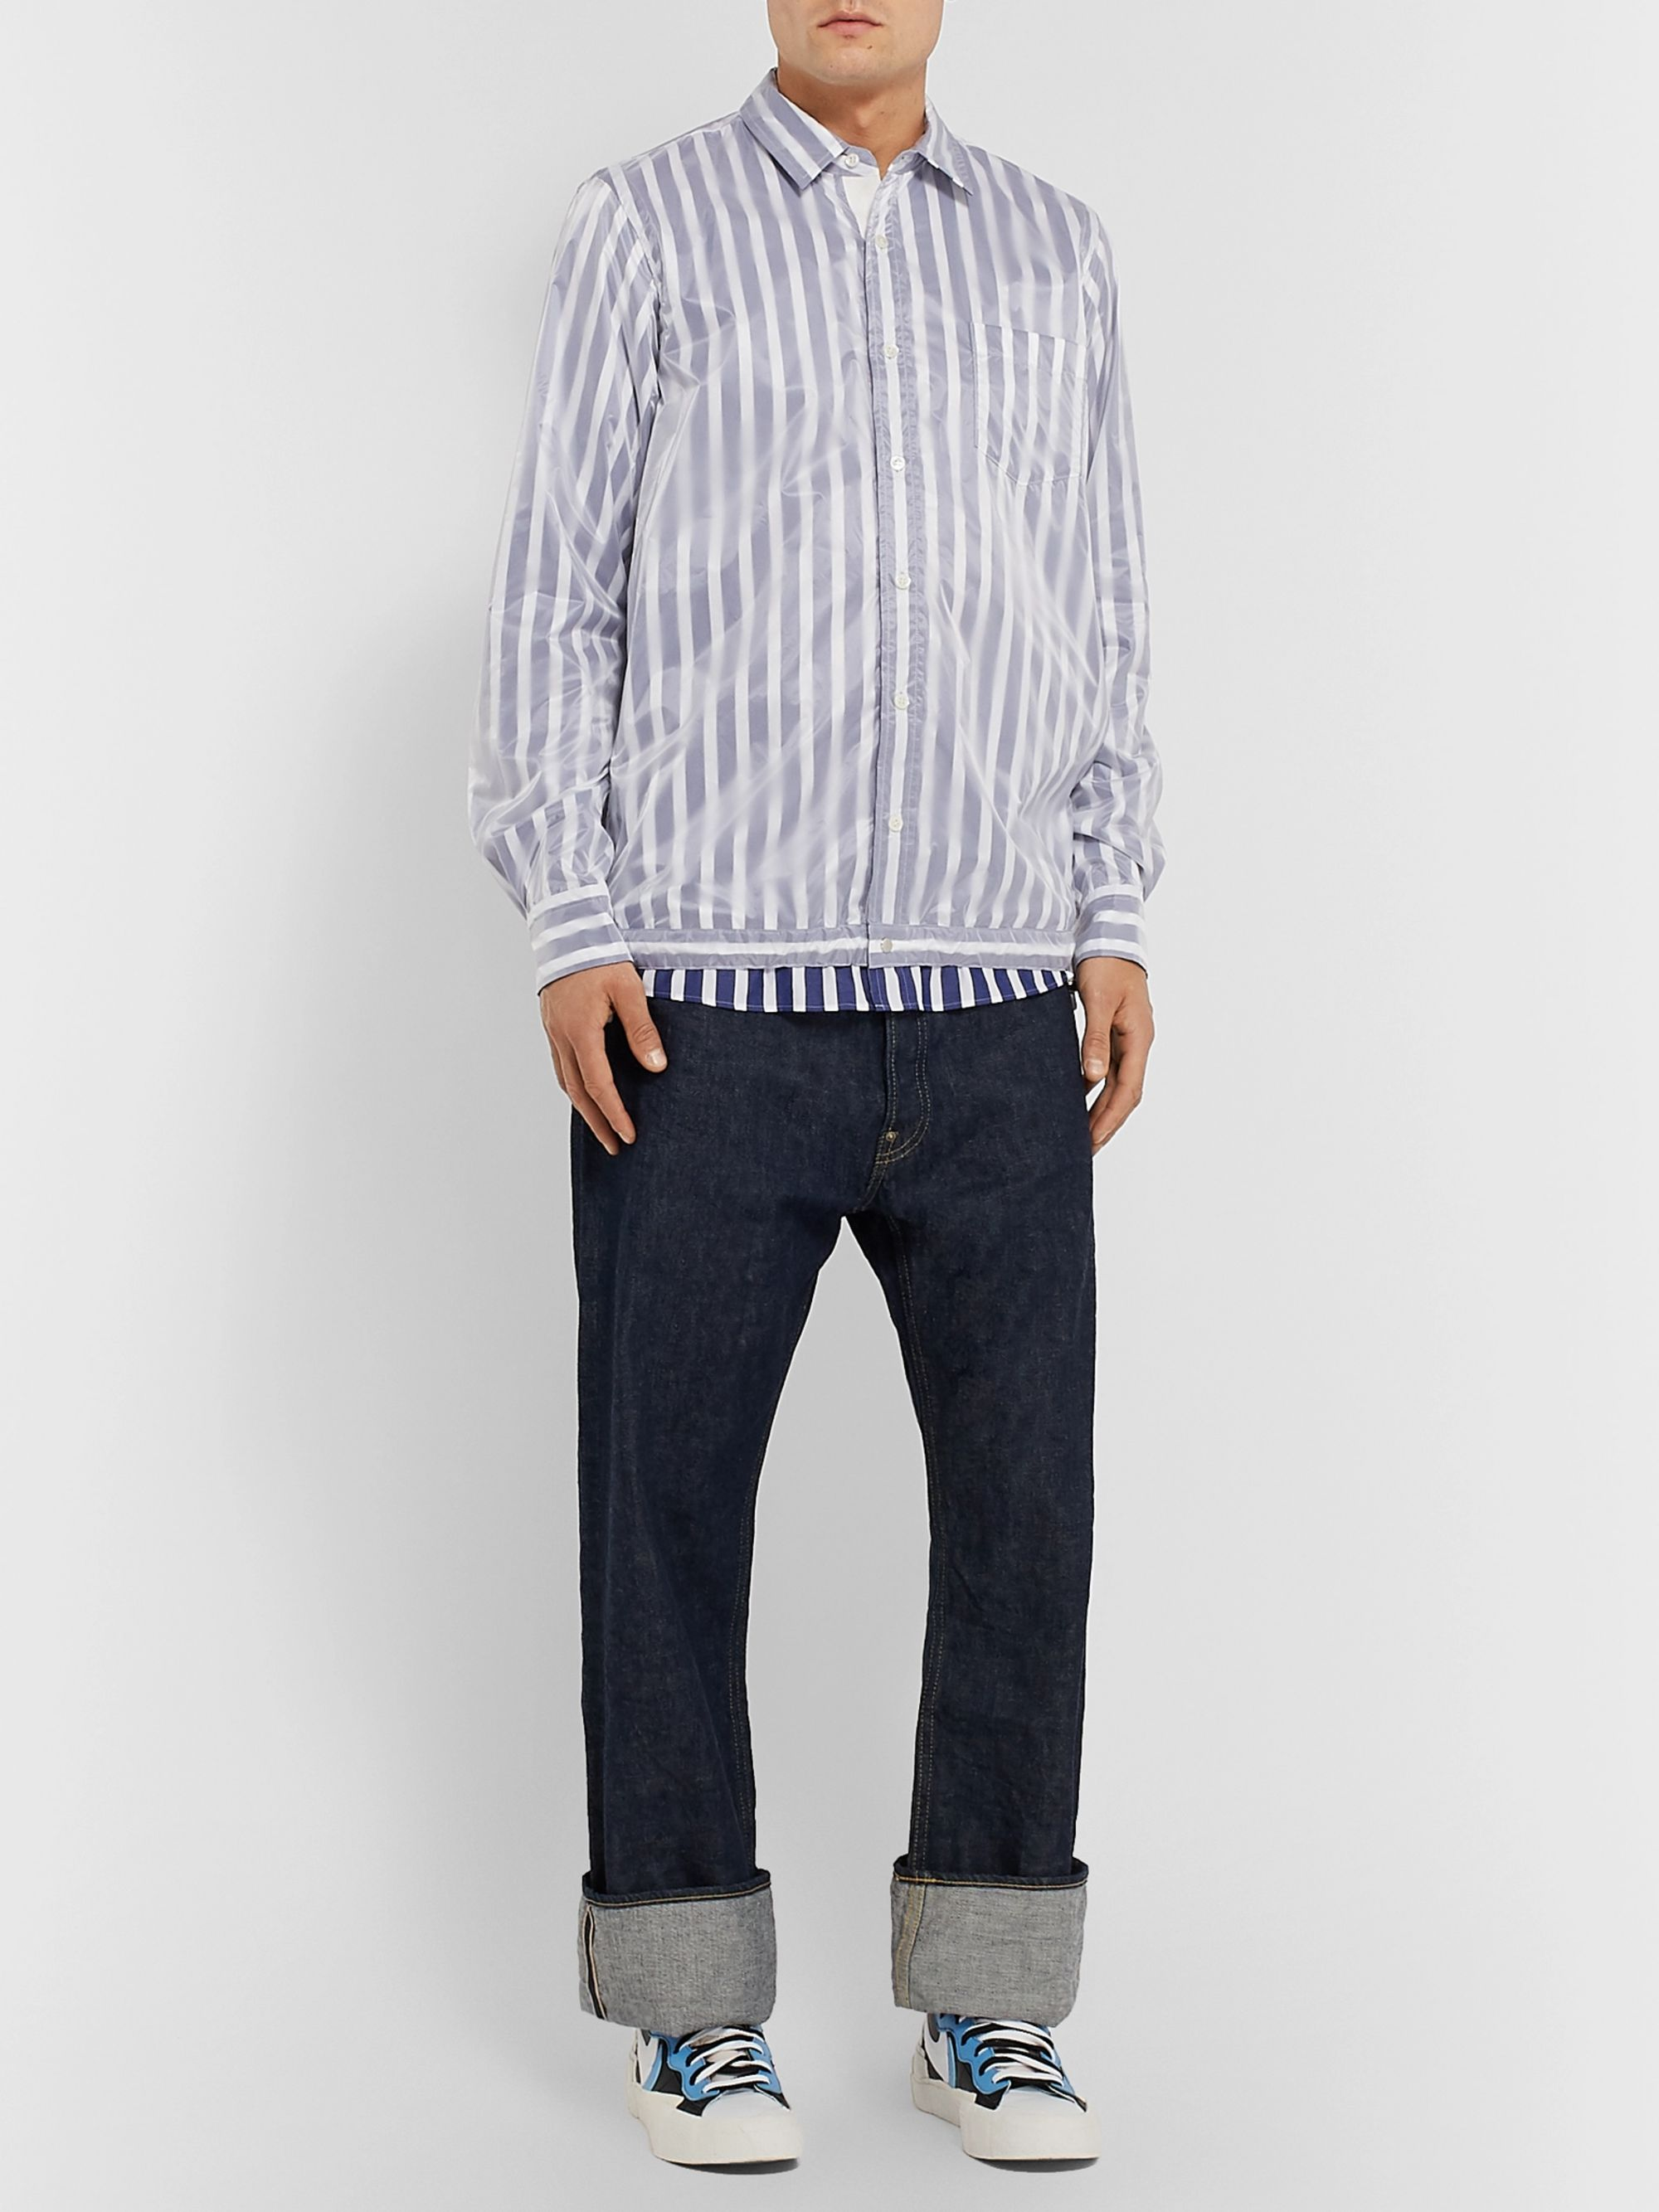 Sacai Layered Nylon and Striped Cotton-Poplin Shirt